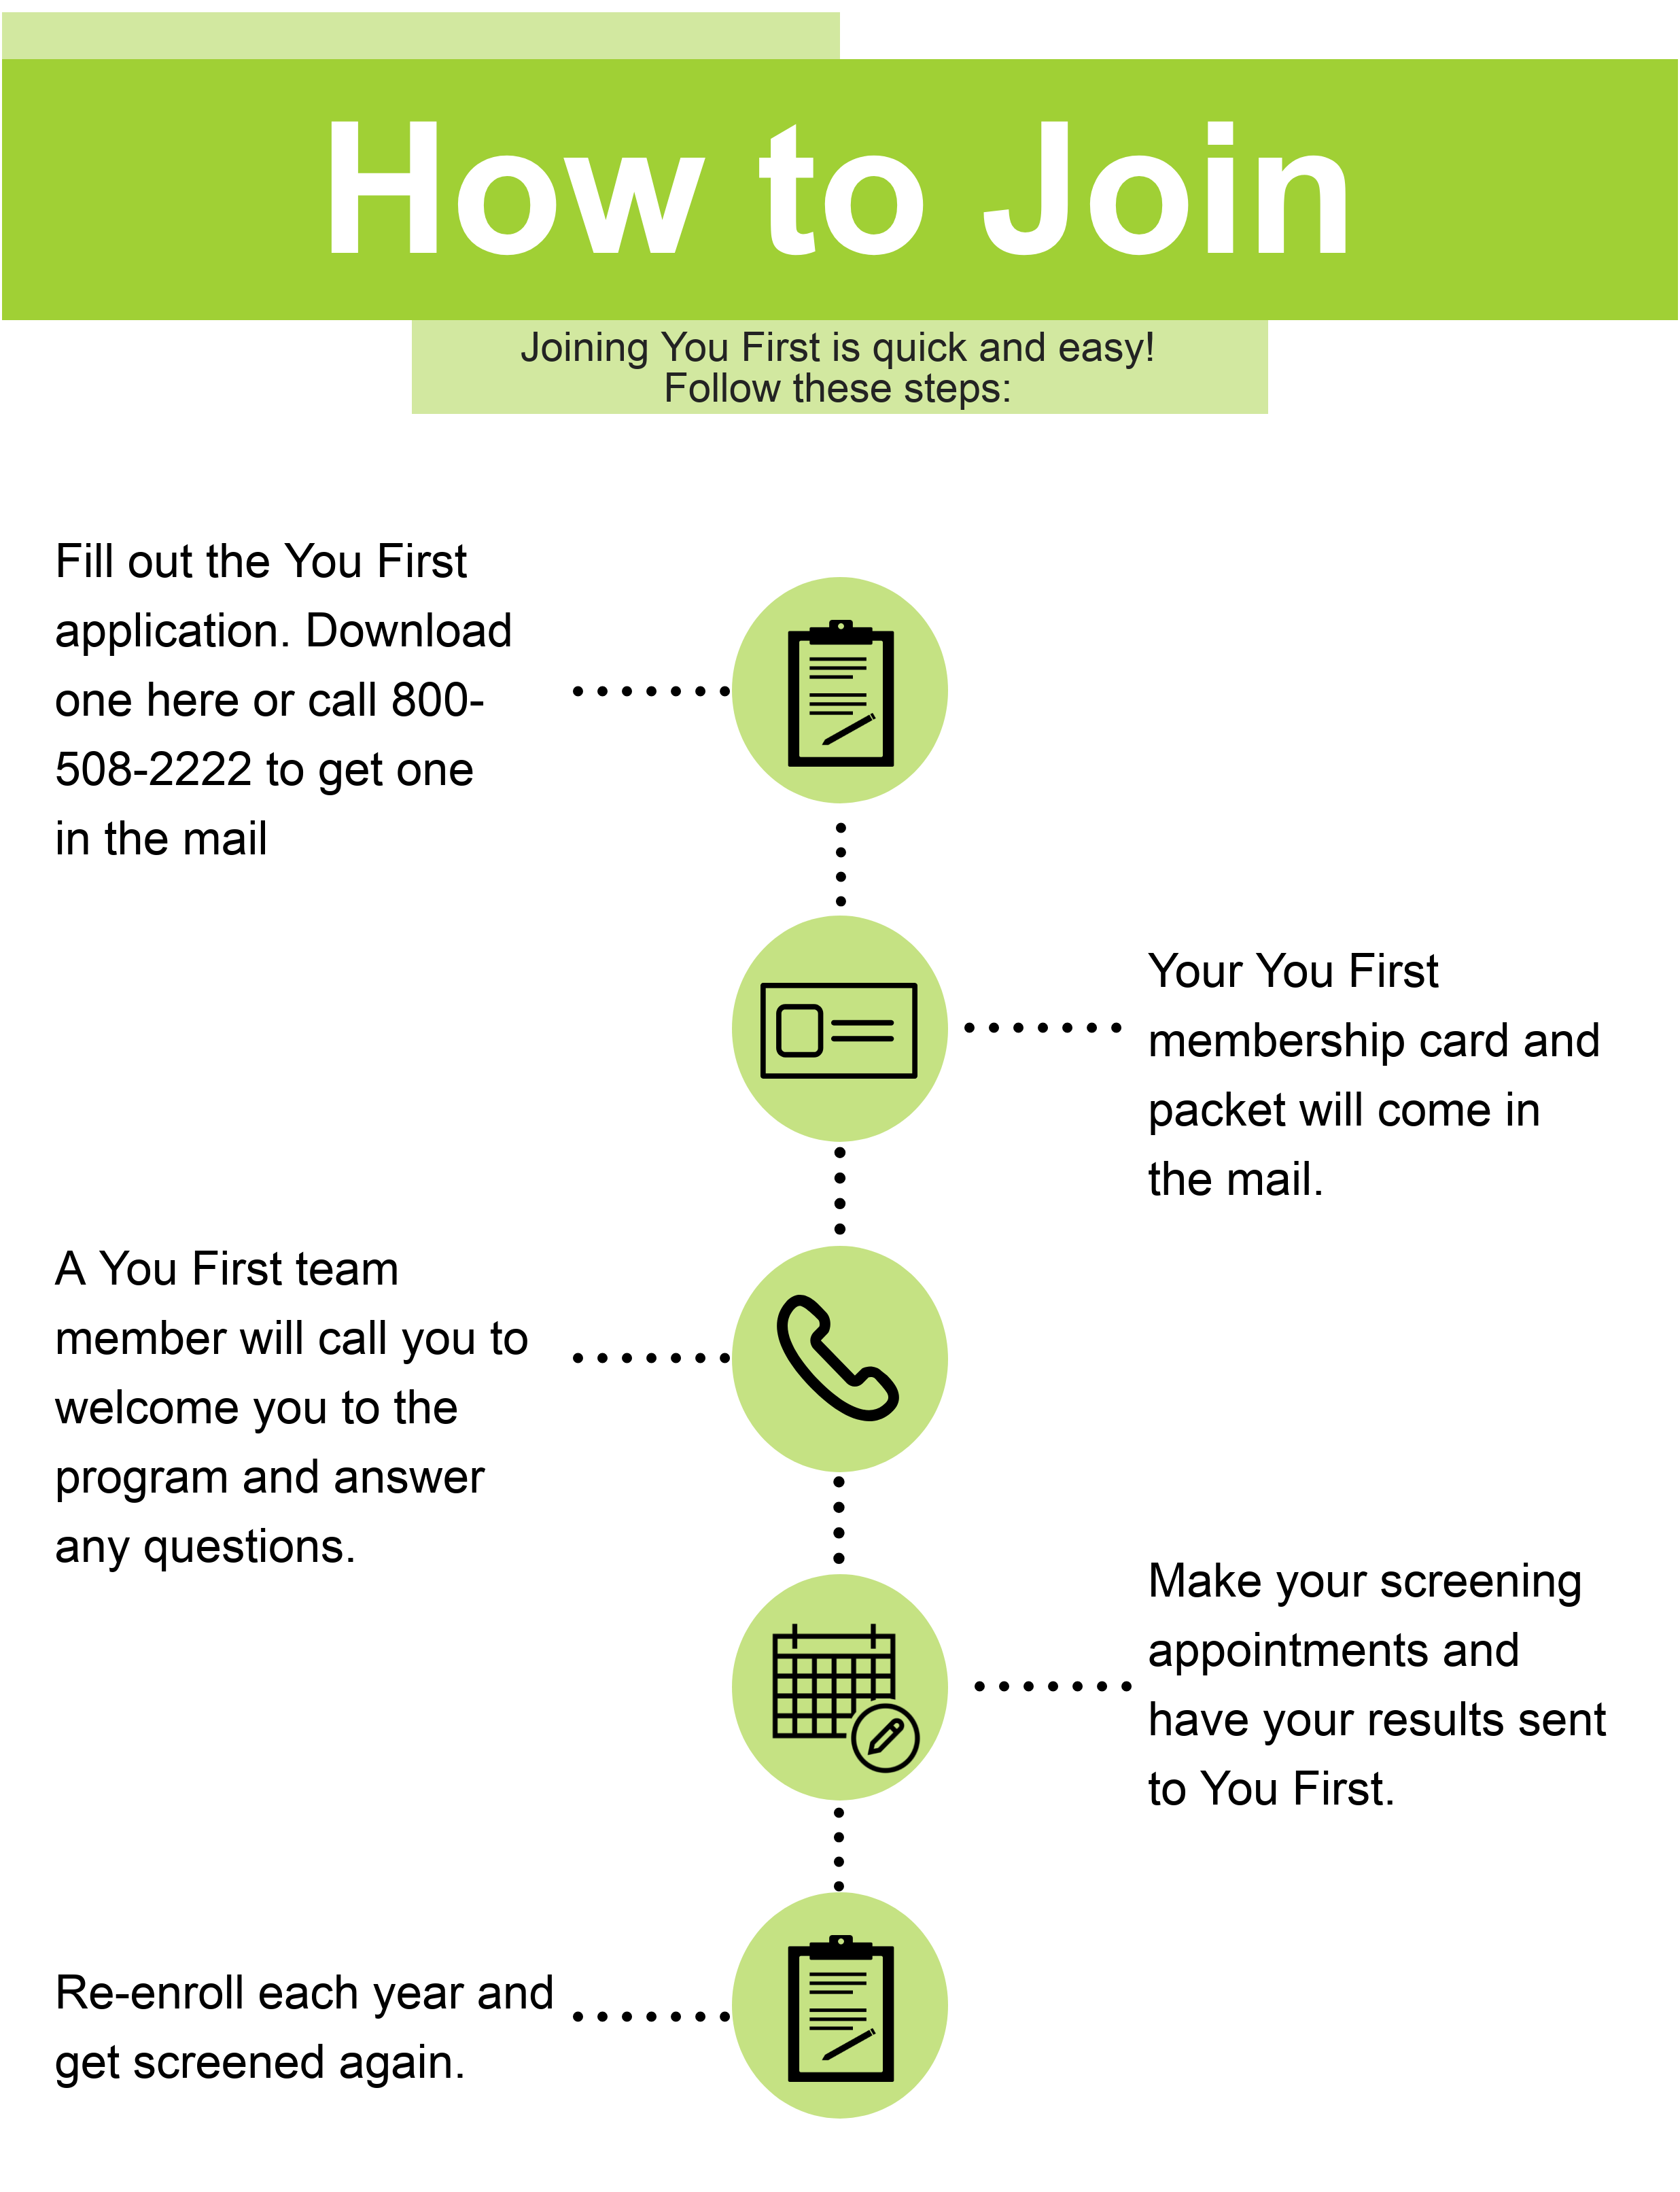 How to Join You First